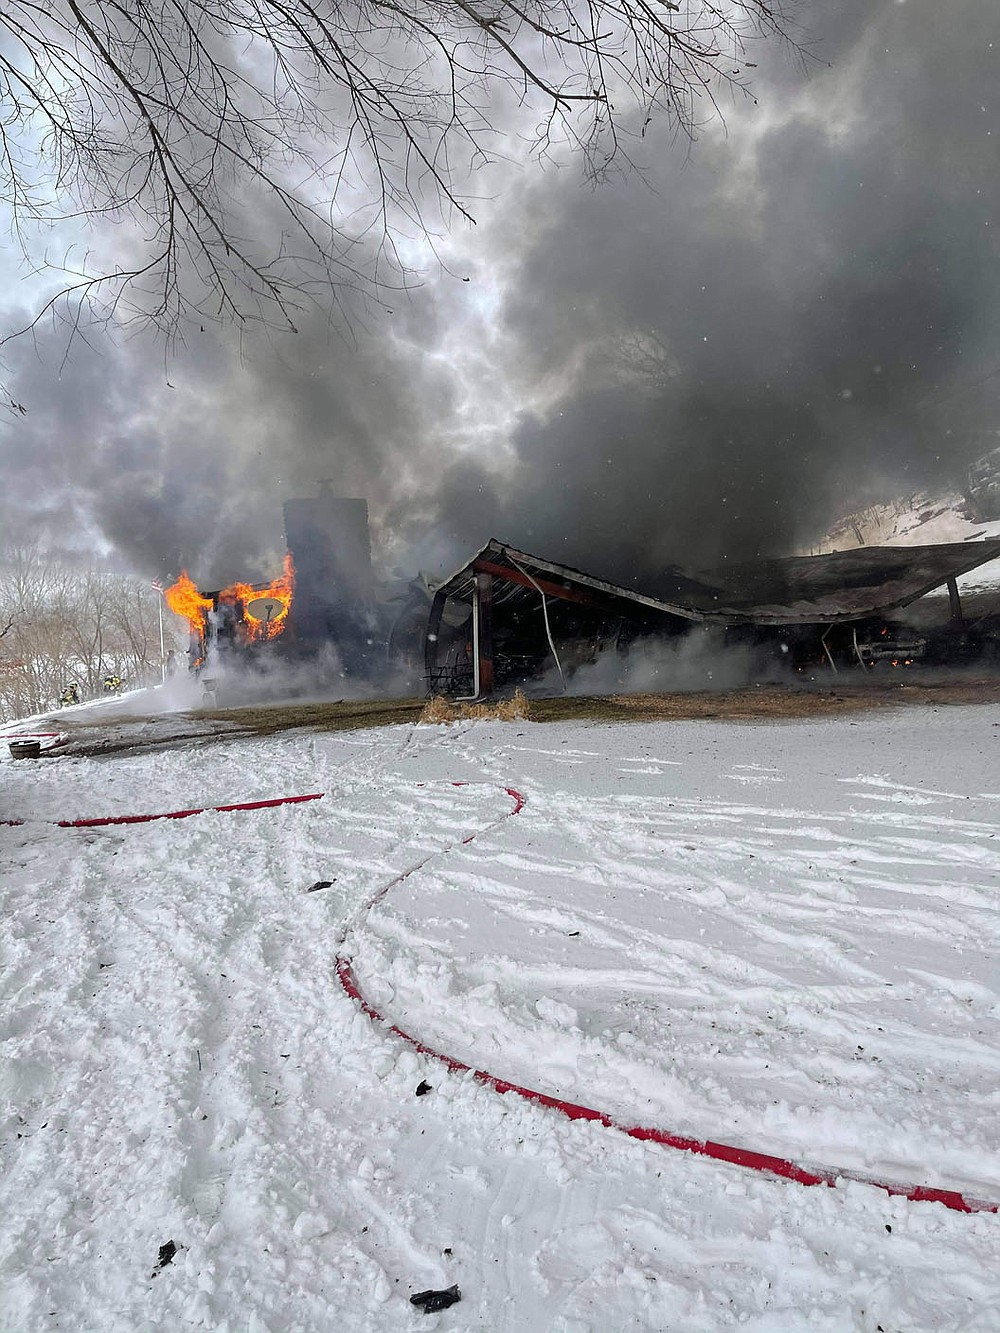 Courtesy photo/Special to the McDonald County Press A house that caught fire on Little Missouri Hollow on Monday afternoon has been deemed a total loss, said White Rock Fire Department Chief Jason Bowman. Cause of fire could not be determined because the structure was too destroyed, he said.